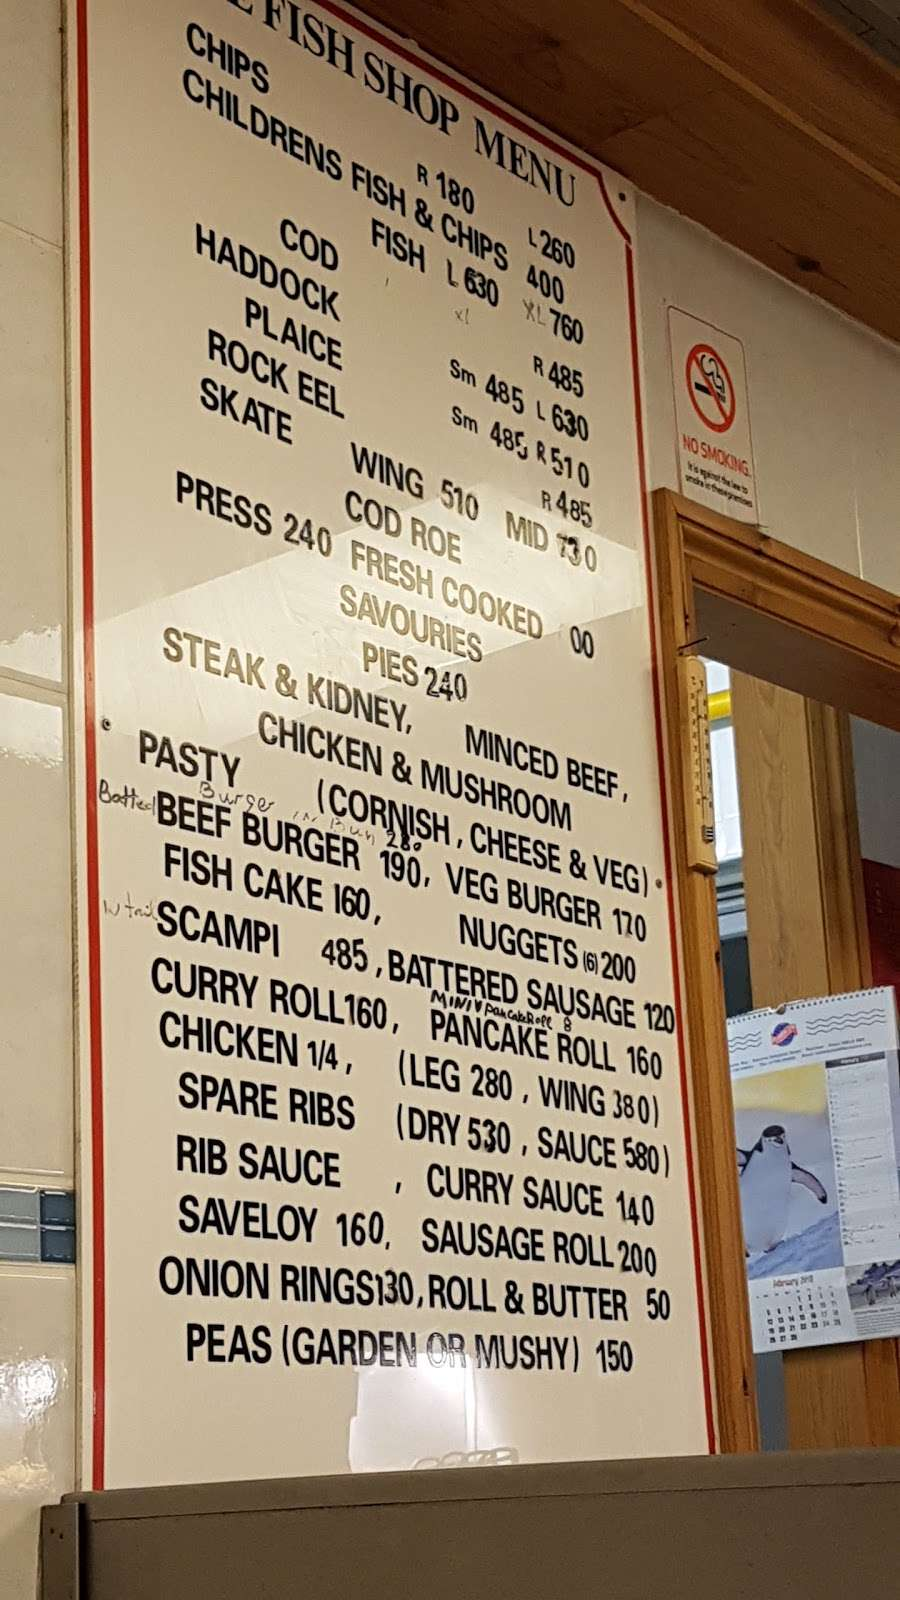 The Fish Shop - meal takeaway  | Photo 4 of 7 | Address: 7B Bridge St, Writtle, Chelmsford CM1 3EY, UK | Phone: 01245 420890